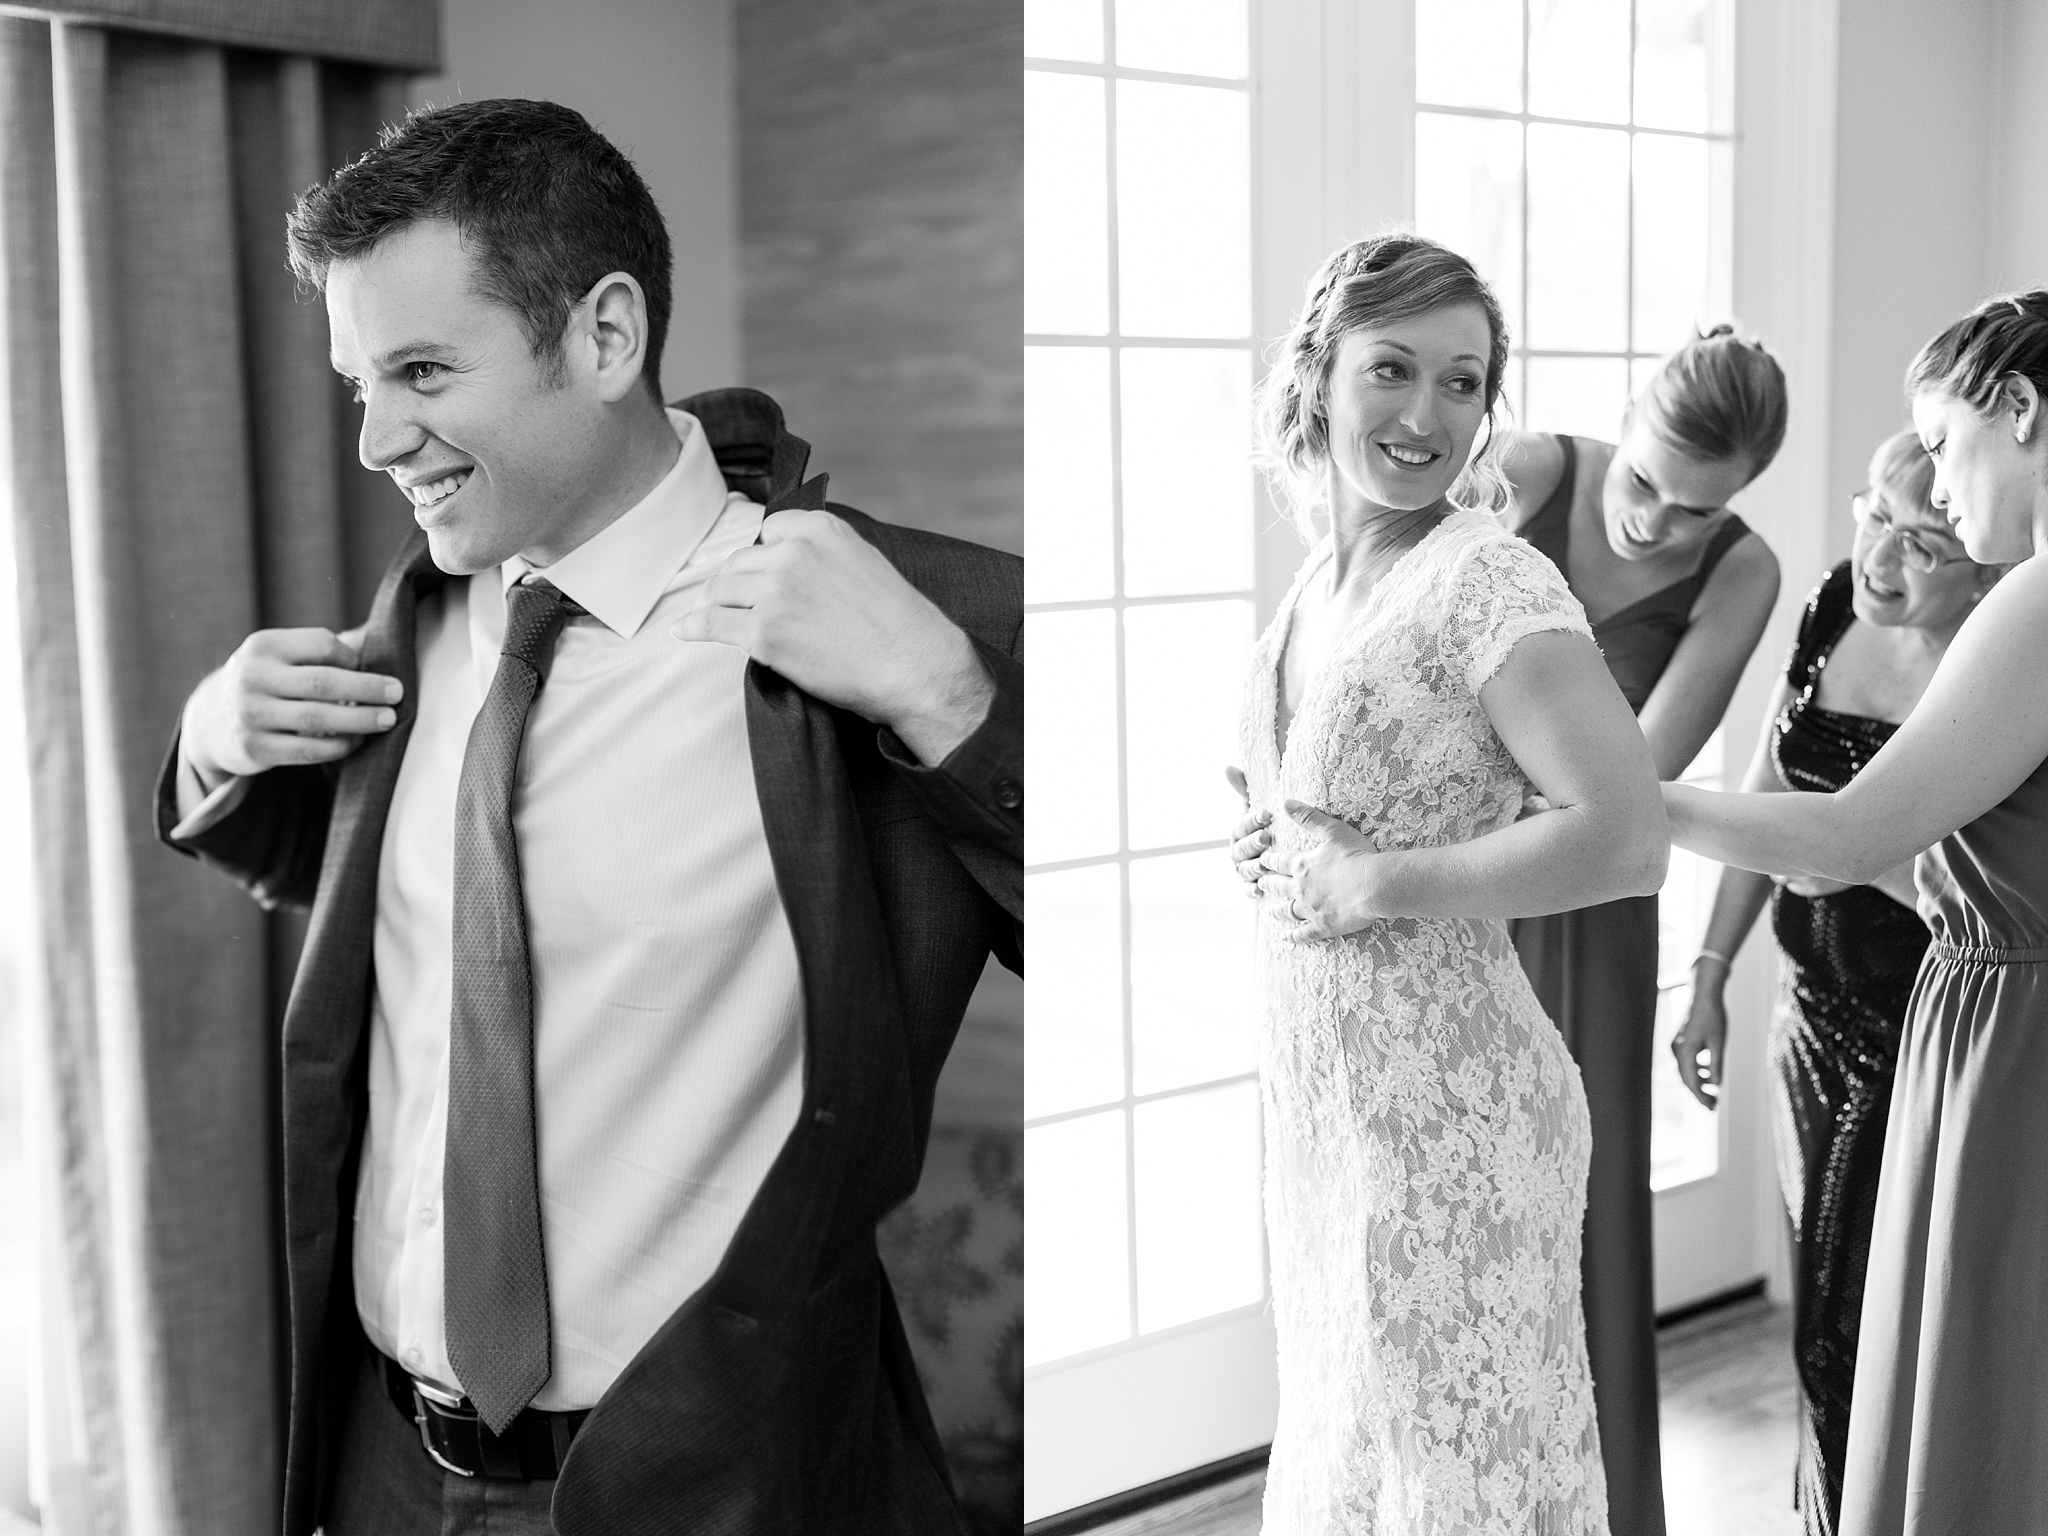 romantic-artful-candid-wedding-photos-in-detroit-lansing-ann-arbor-northern-michigan-and-chicago-by-courtney-carolyn-photography_0024.jpg